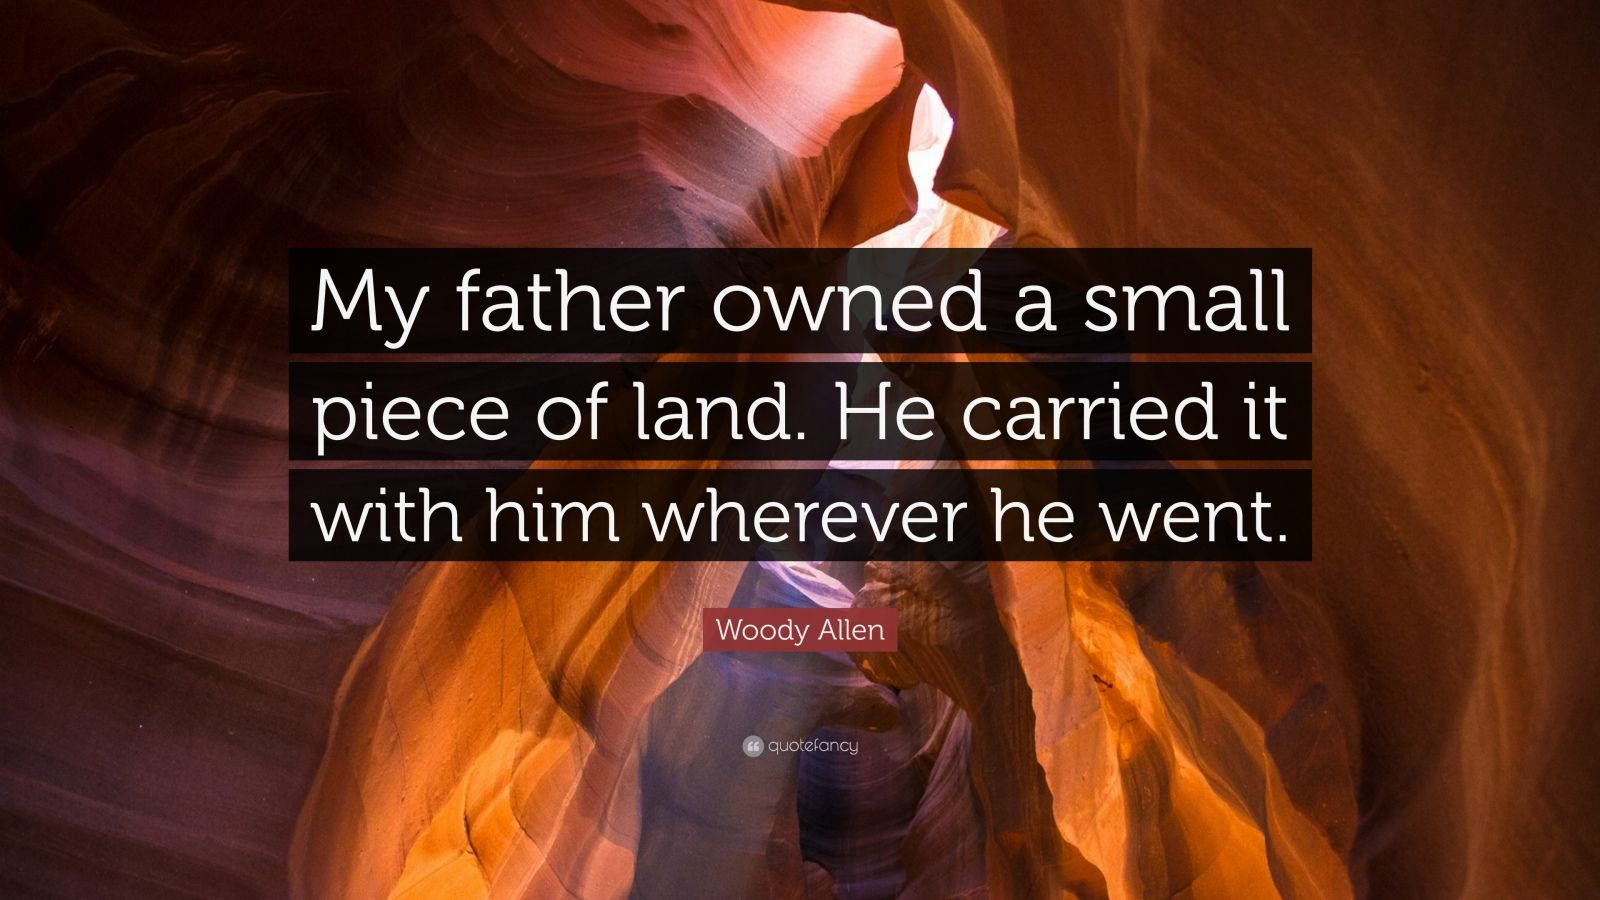 """Woody Allen Quote: """"My father owned a small piece of land. He carried it with him wherever he went."""""""